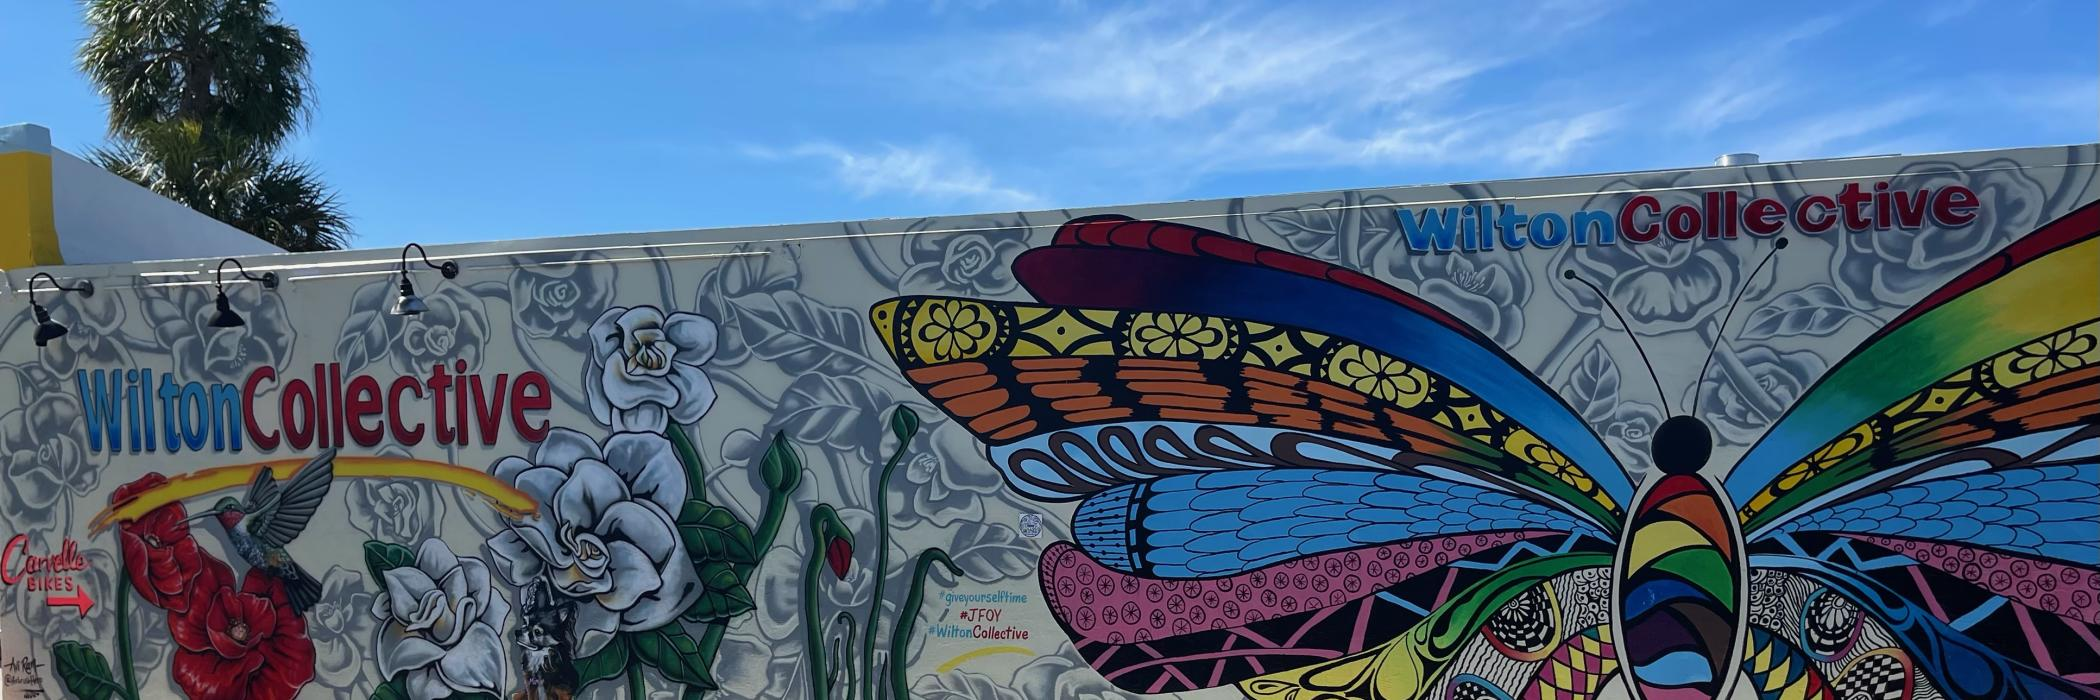 Wilton Collective Butterfly Mural